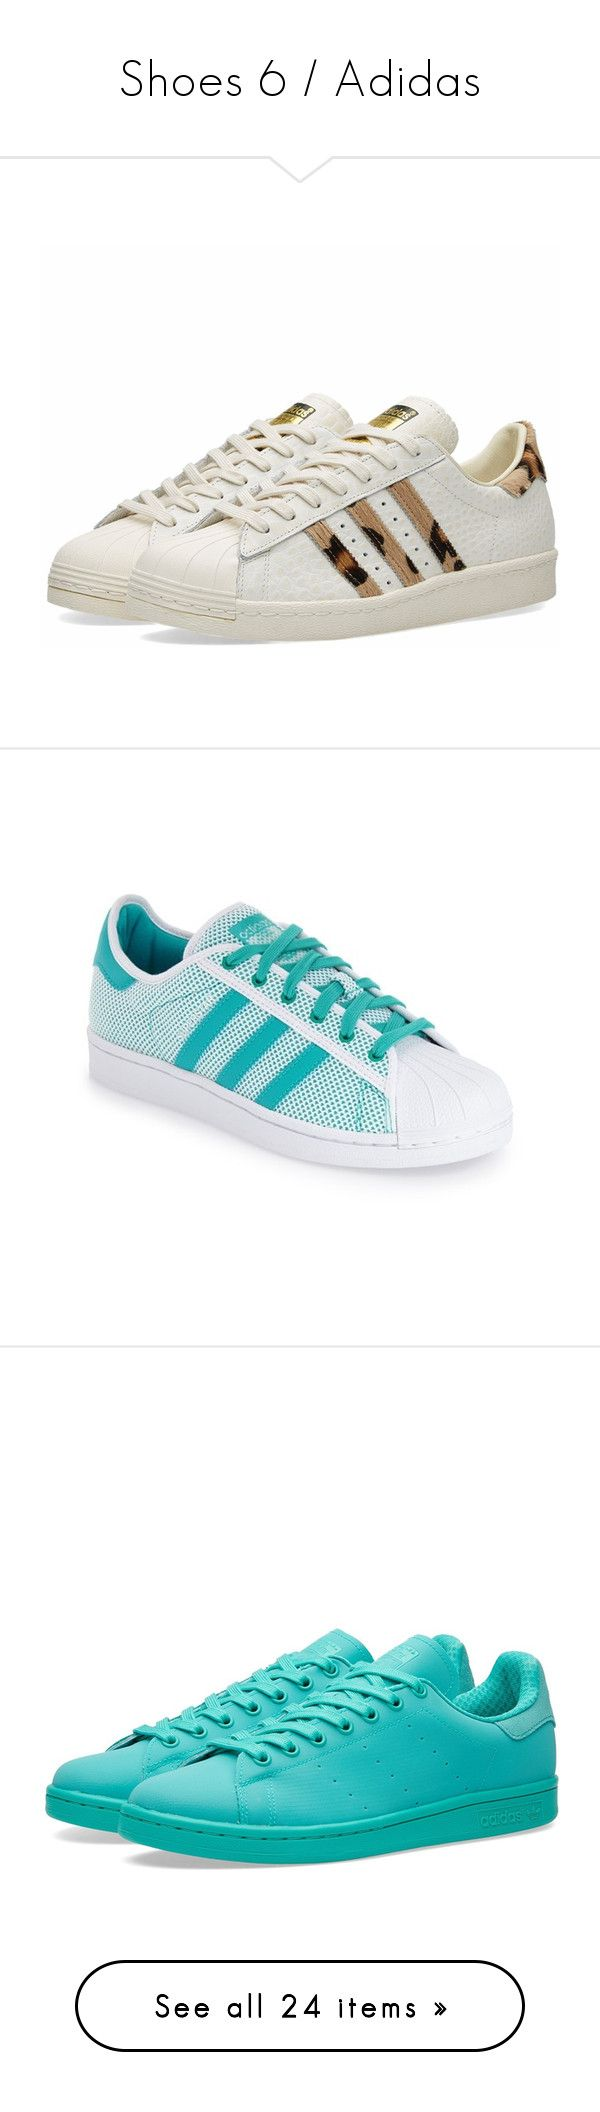 """""""Shoes 6 / Adidas"""" by officallychildish on Polyvore featuring men's fashion, men's shoes, 80s mens shoes, adidas mens shoes, mens animal print shoes, men's sneakers, collegiate red, mens sneakers, adidas mens sneakers and vintage mens sneakers"""